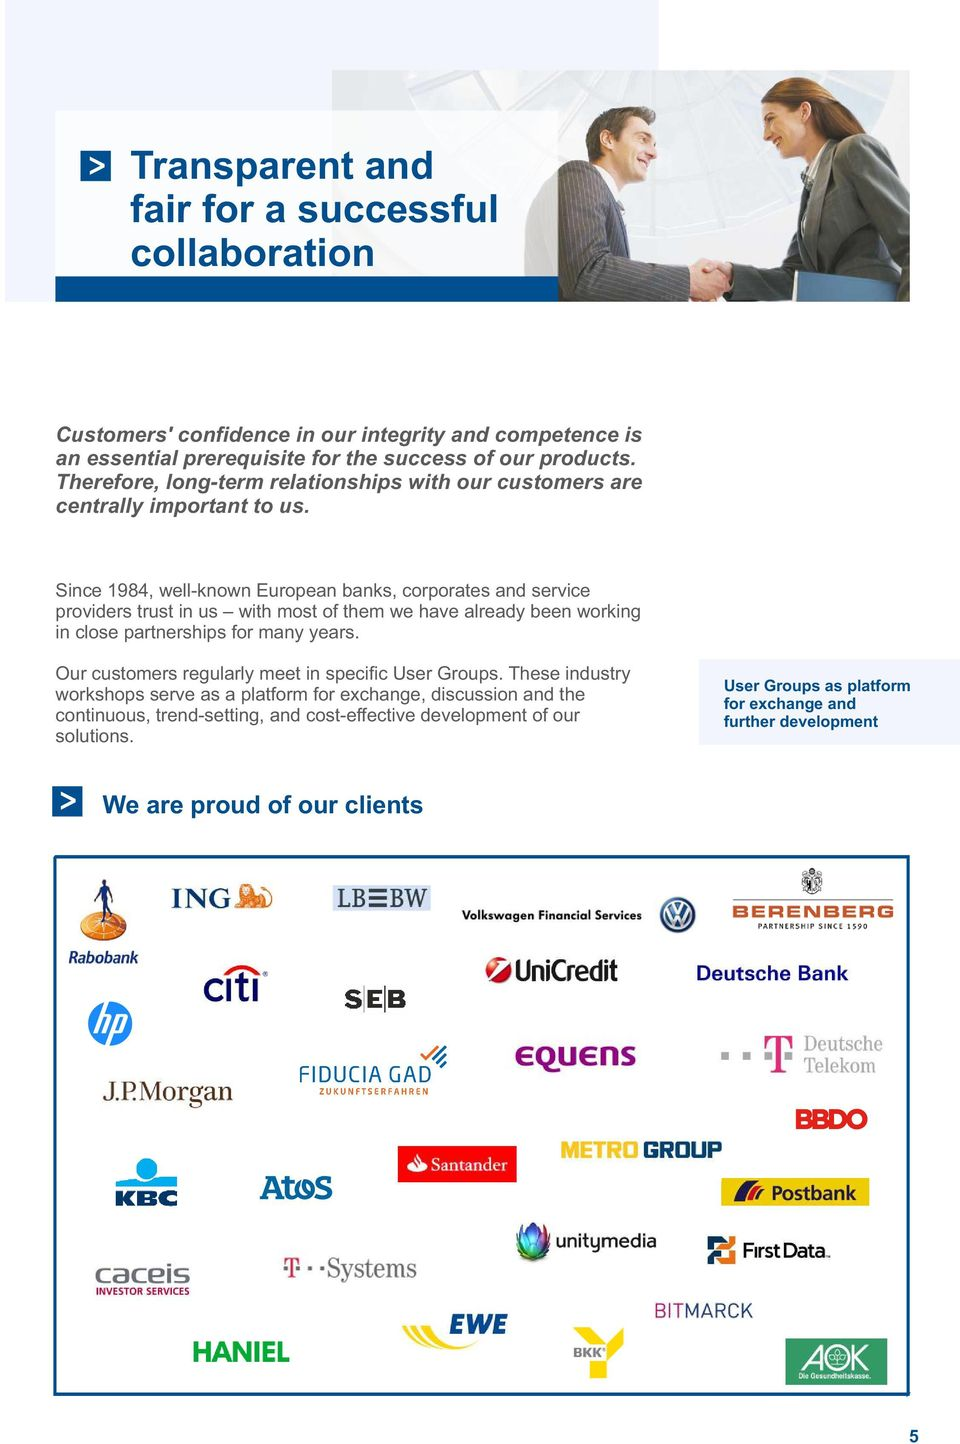 Since 1984, well-known European banks, corporates and service providers trust in us with most of them we have already been working in close partnerships for many years.